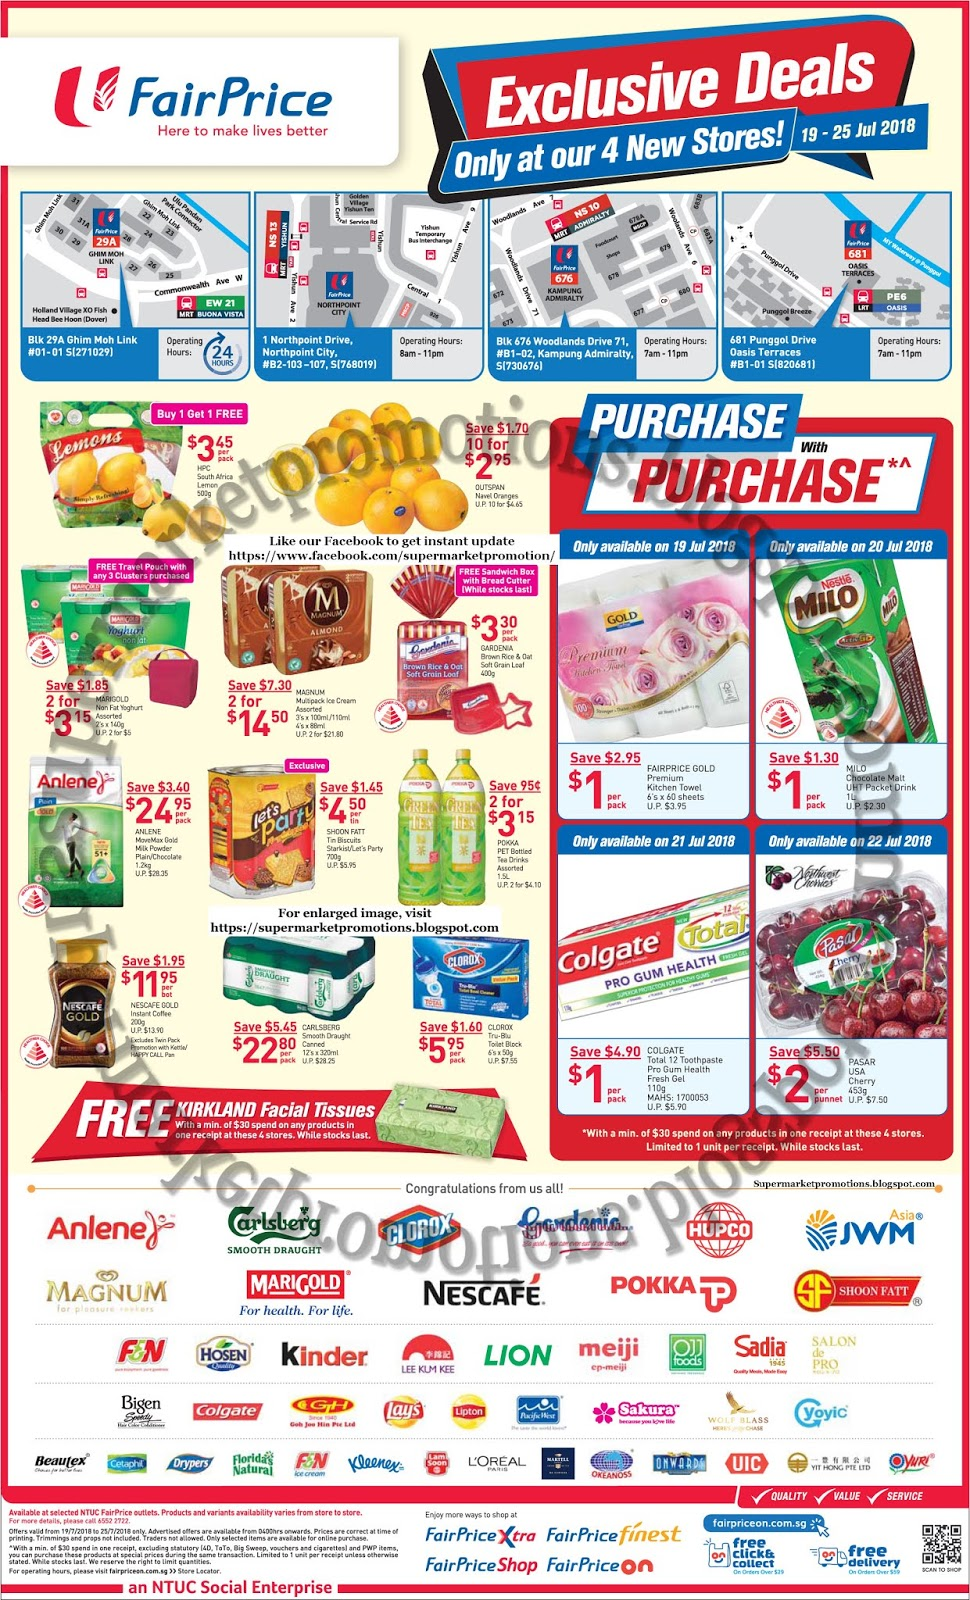 Ntuc Fairprice Exclusive Deals 19 25 July 2018 Supermarket Promotions